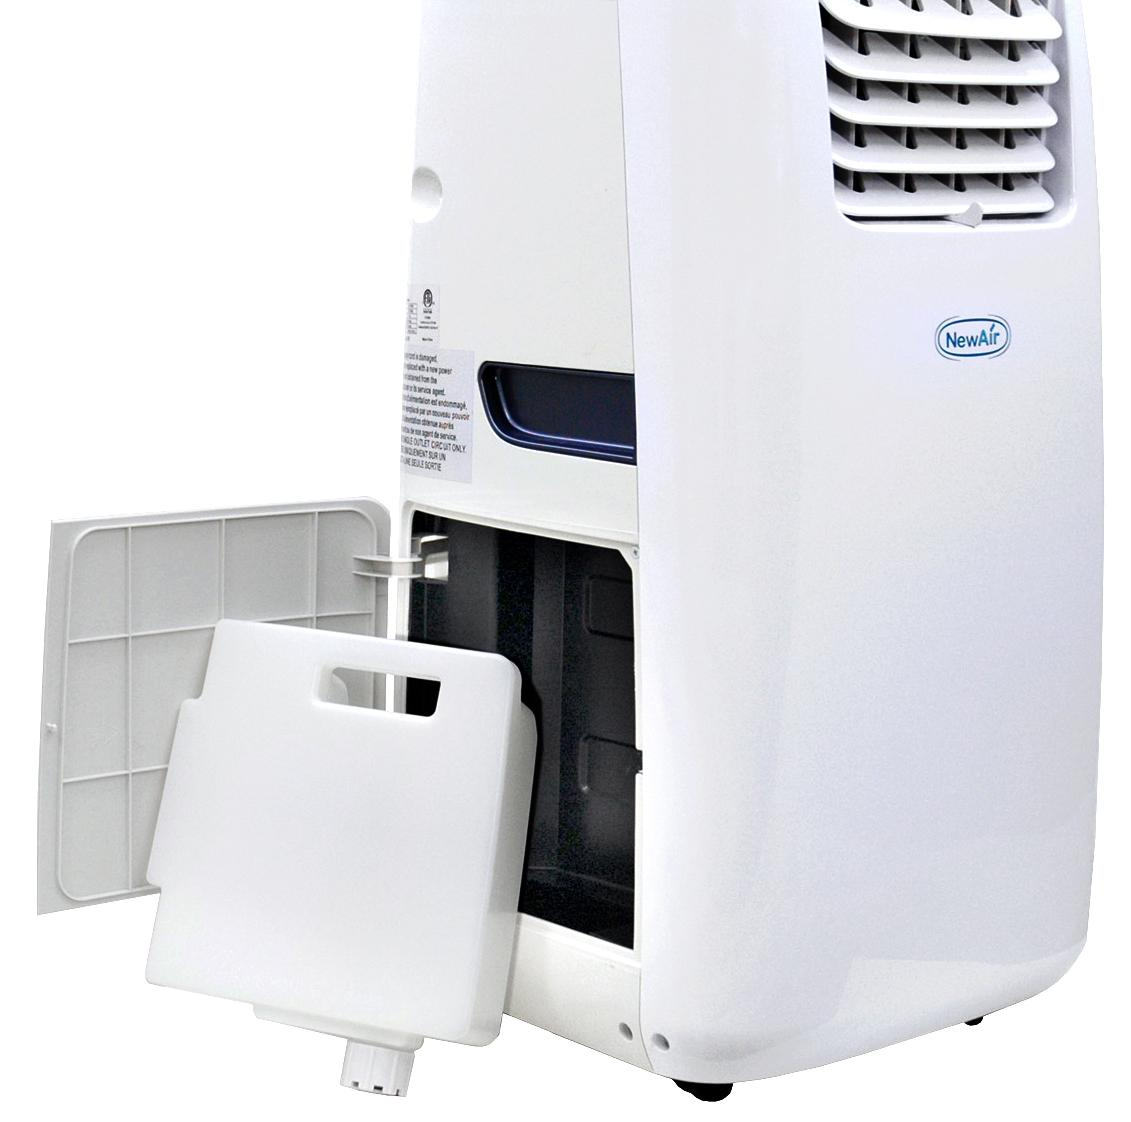 efficiency booster the ac 14100h features an efficiency booster that  #4E5D7E